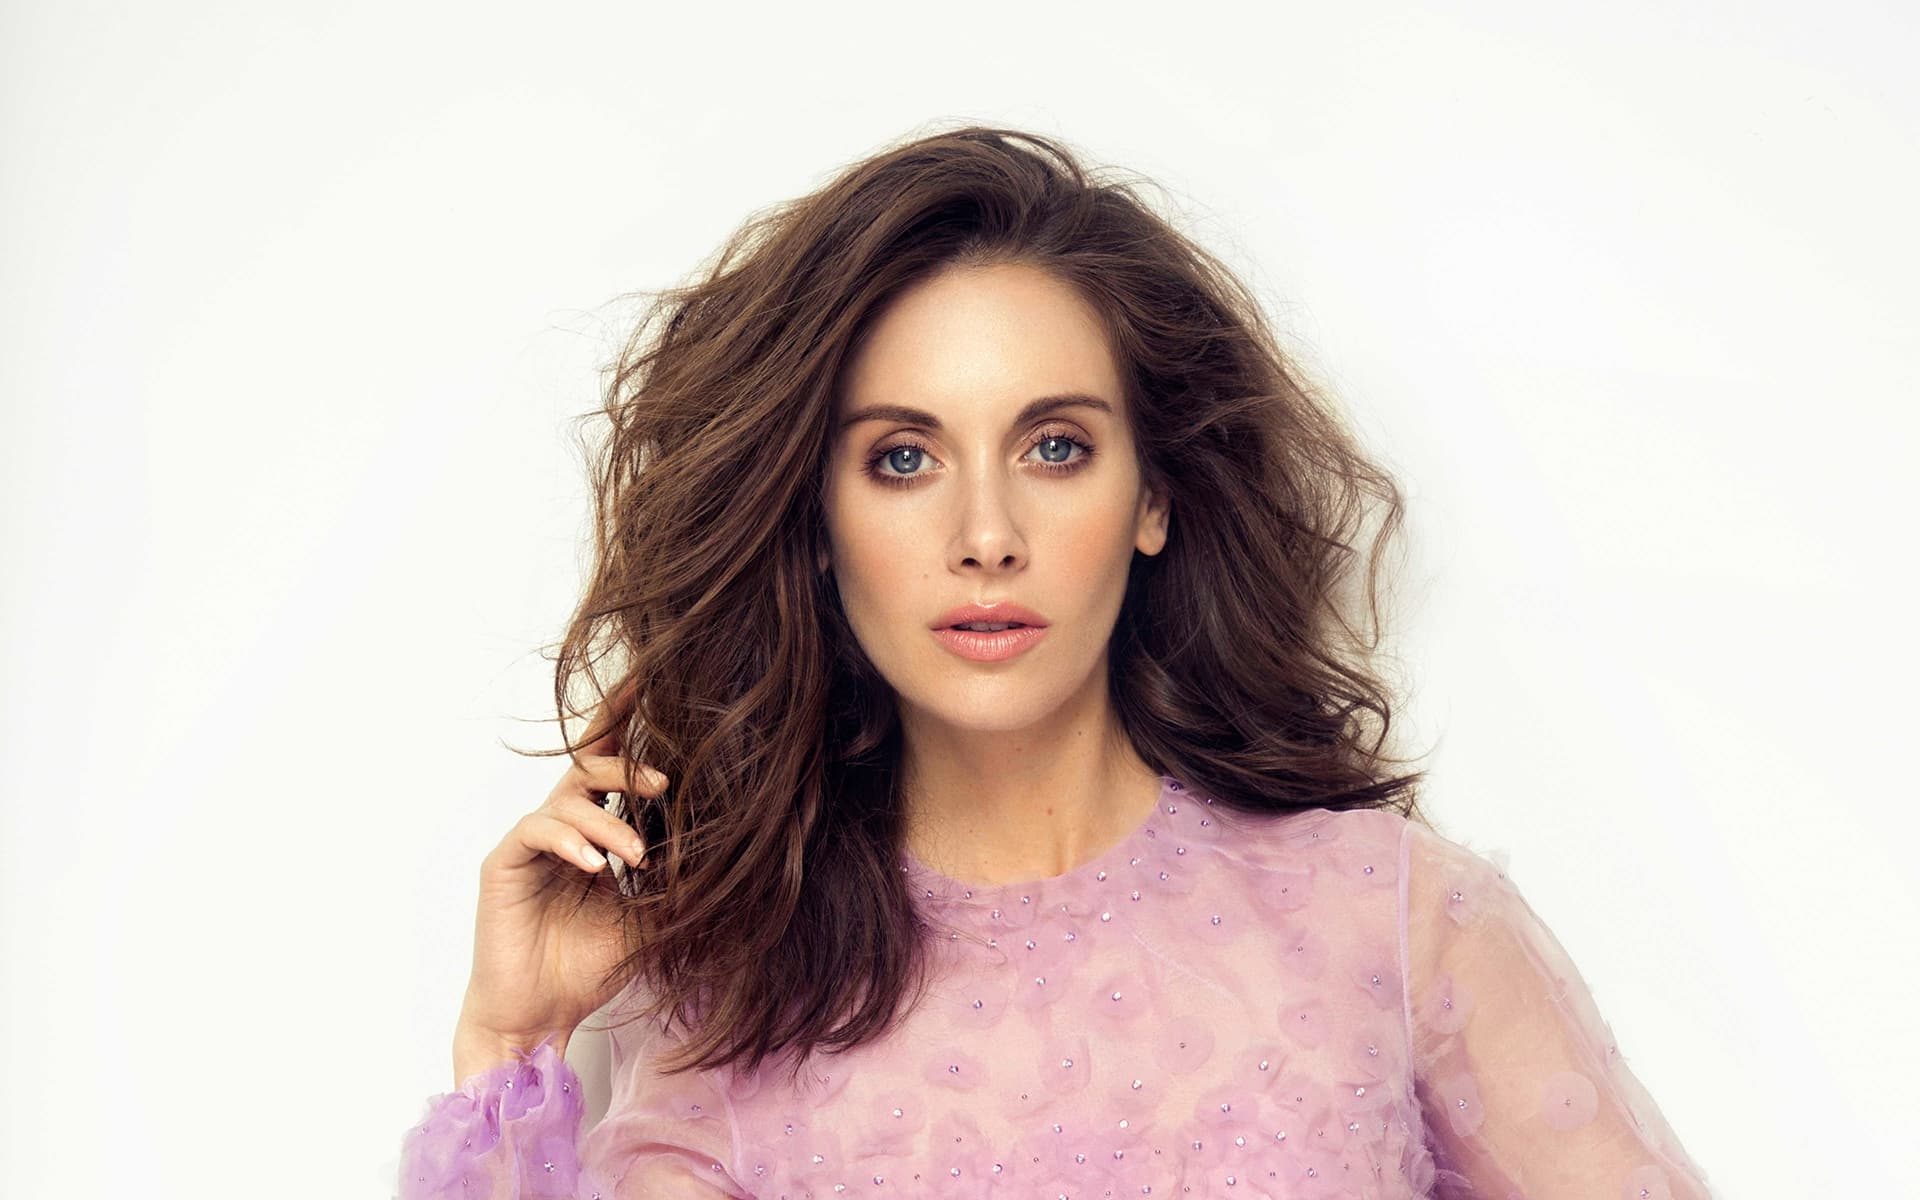 17+ Alison Brie wallpapers High Quality Resolution Download